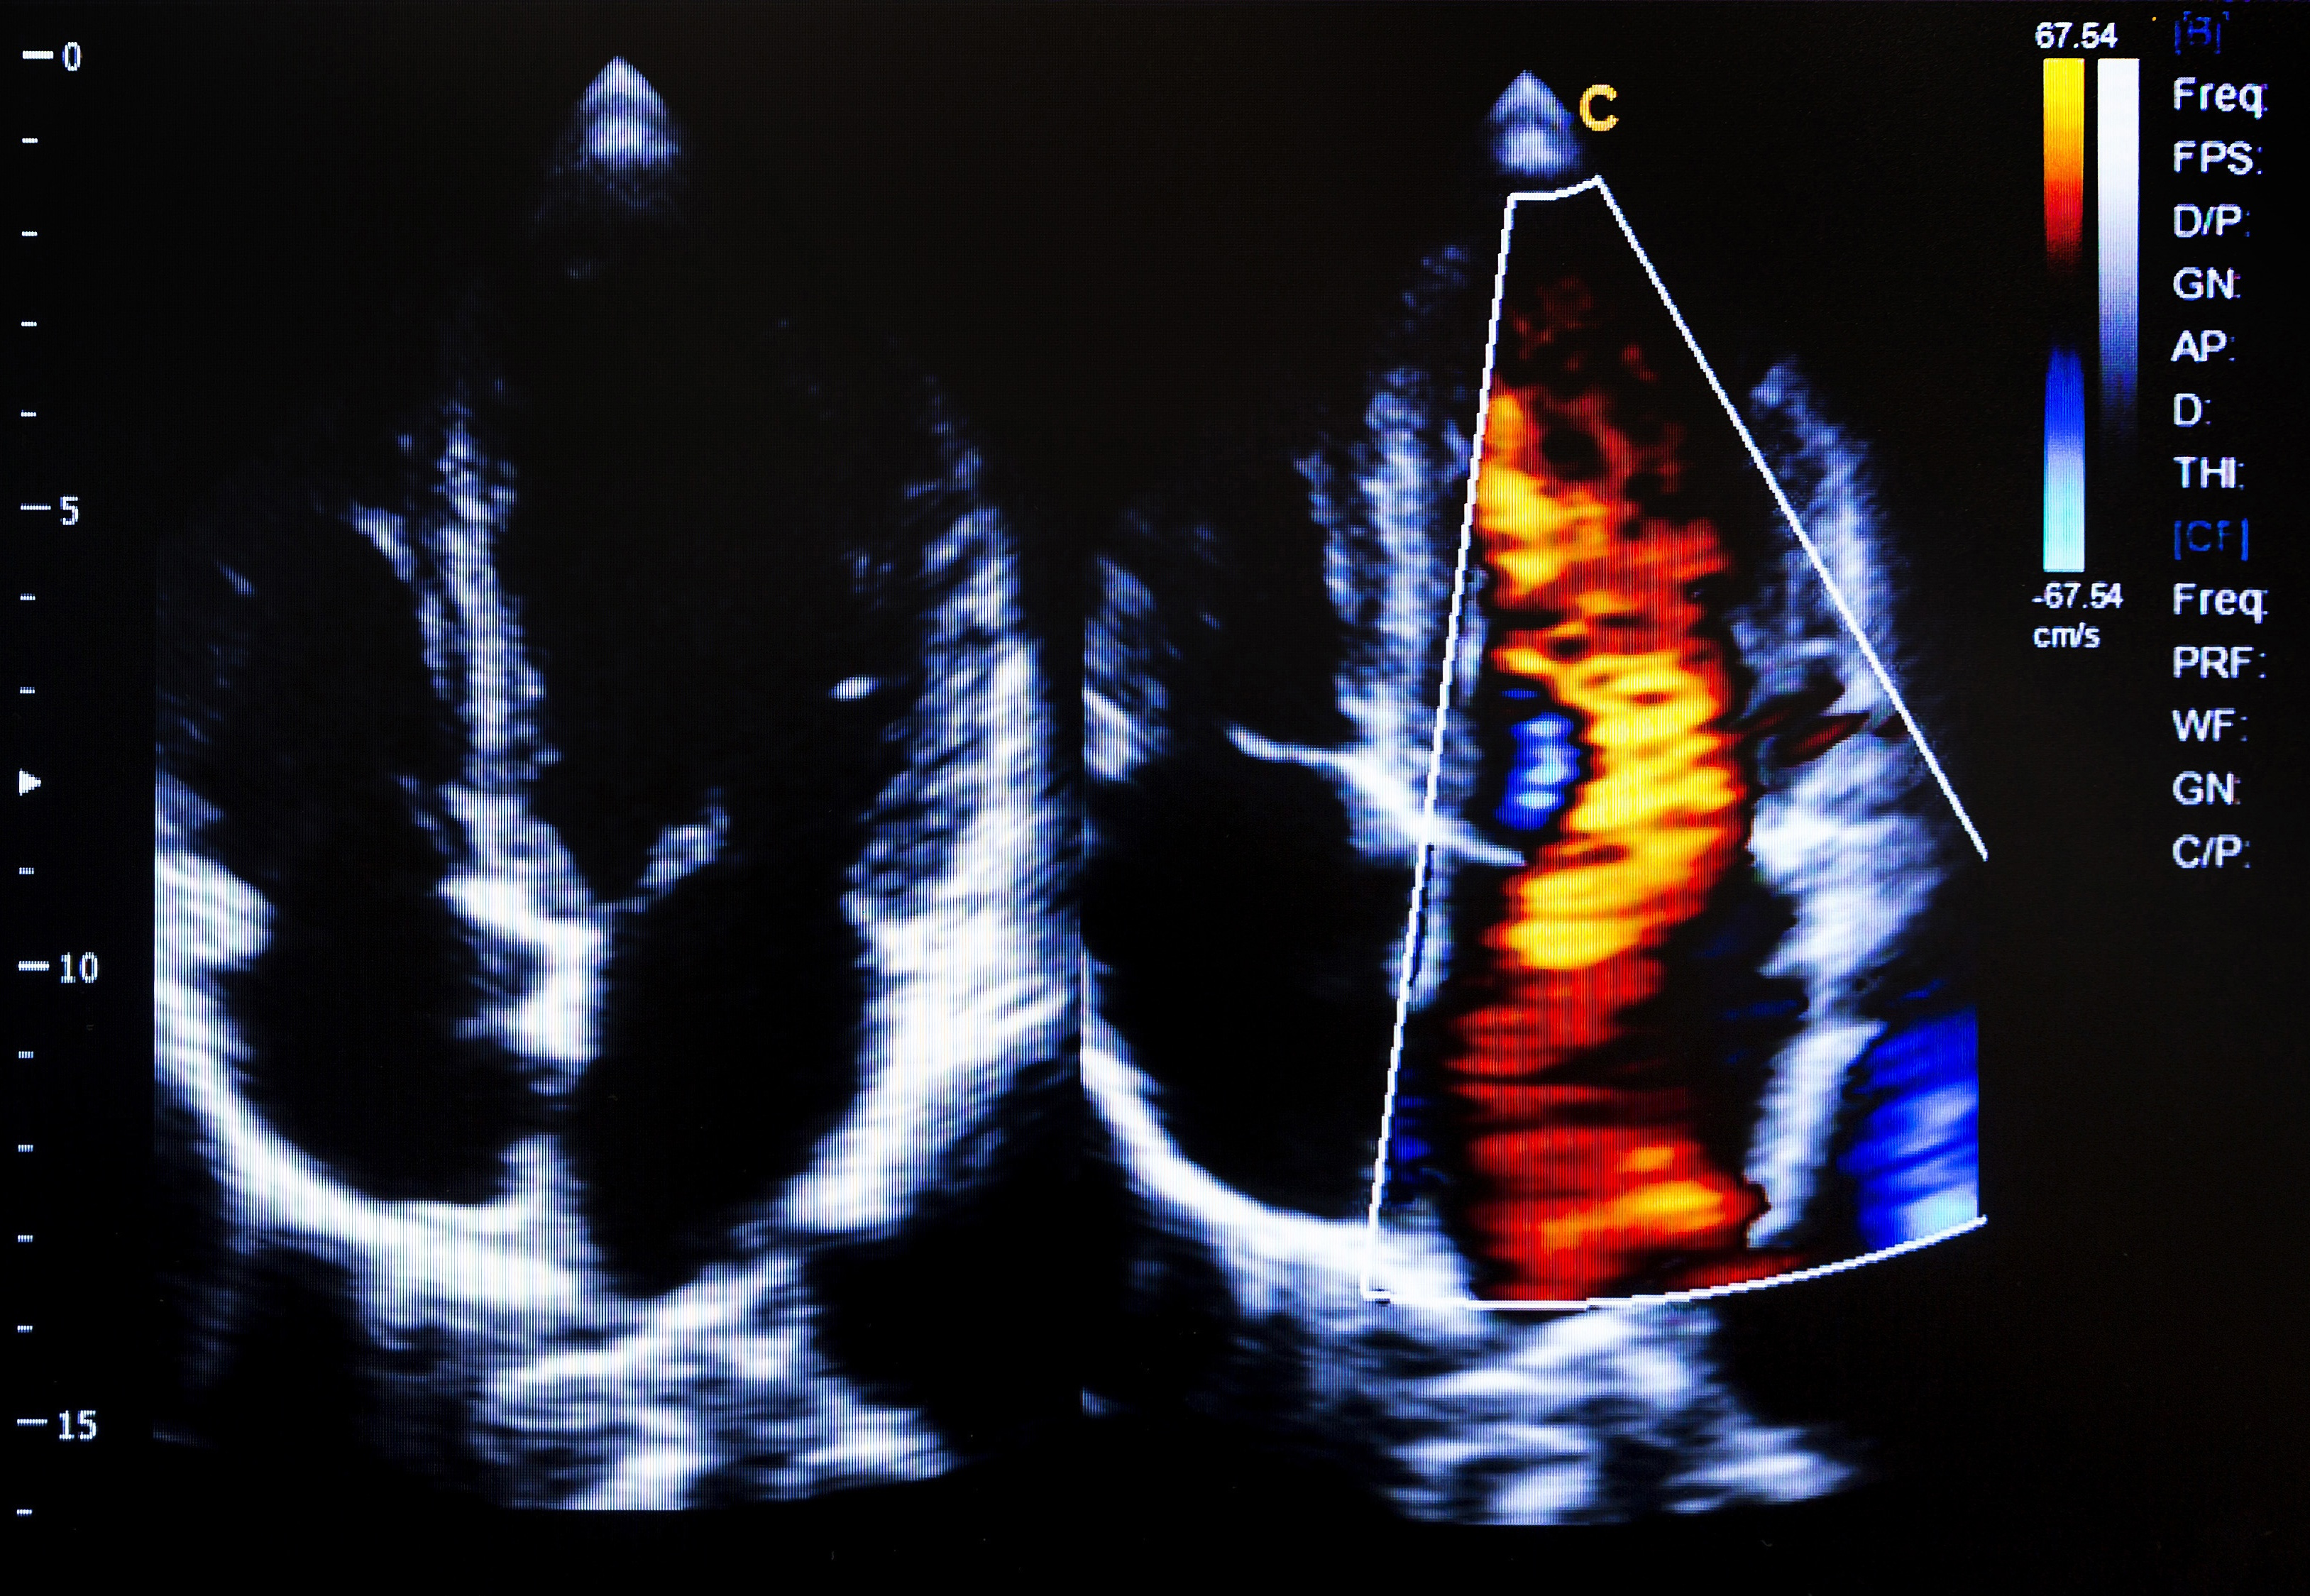 Telecardiology: Using Off-Site Cardiologists to Interpret Cardiac Imaging Studies